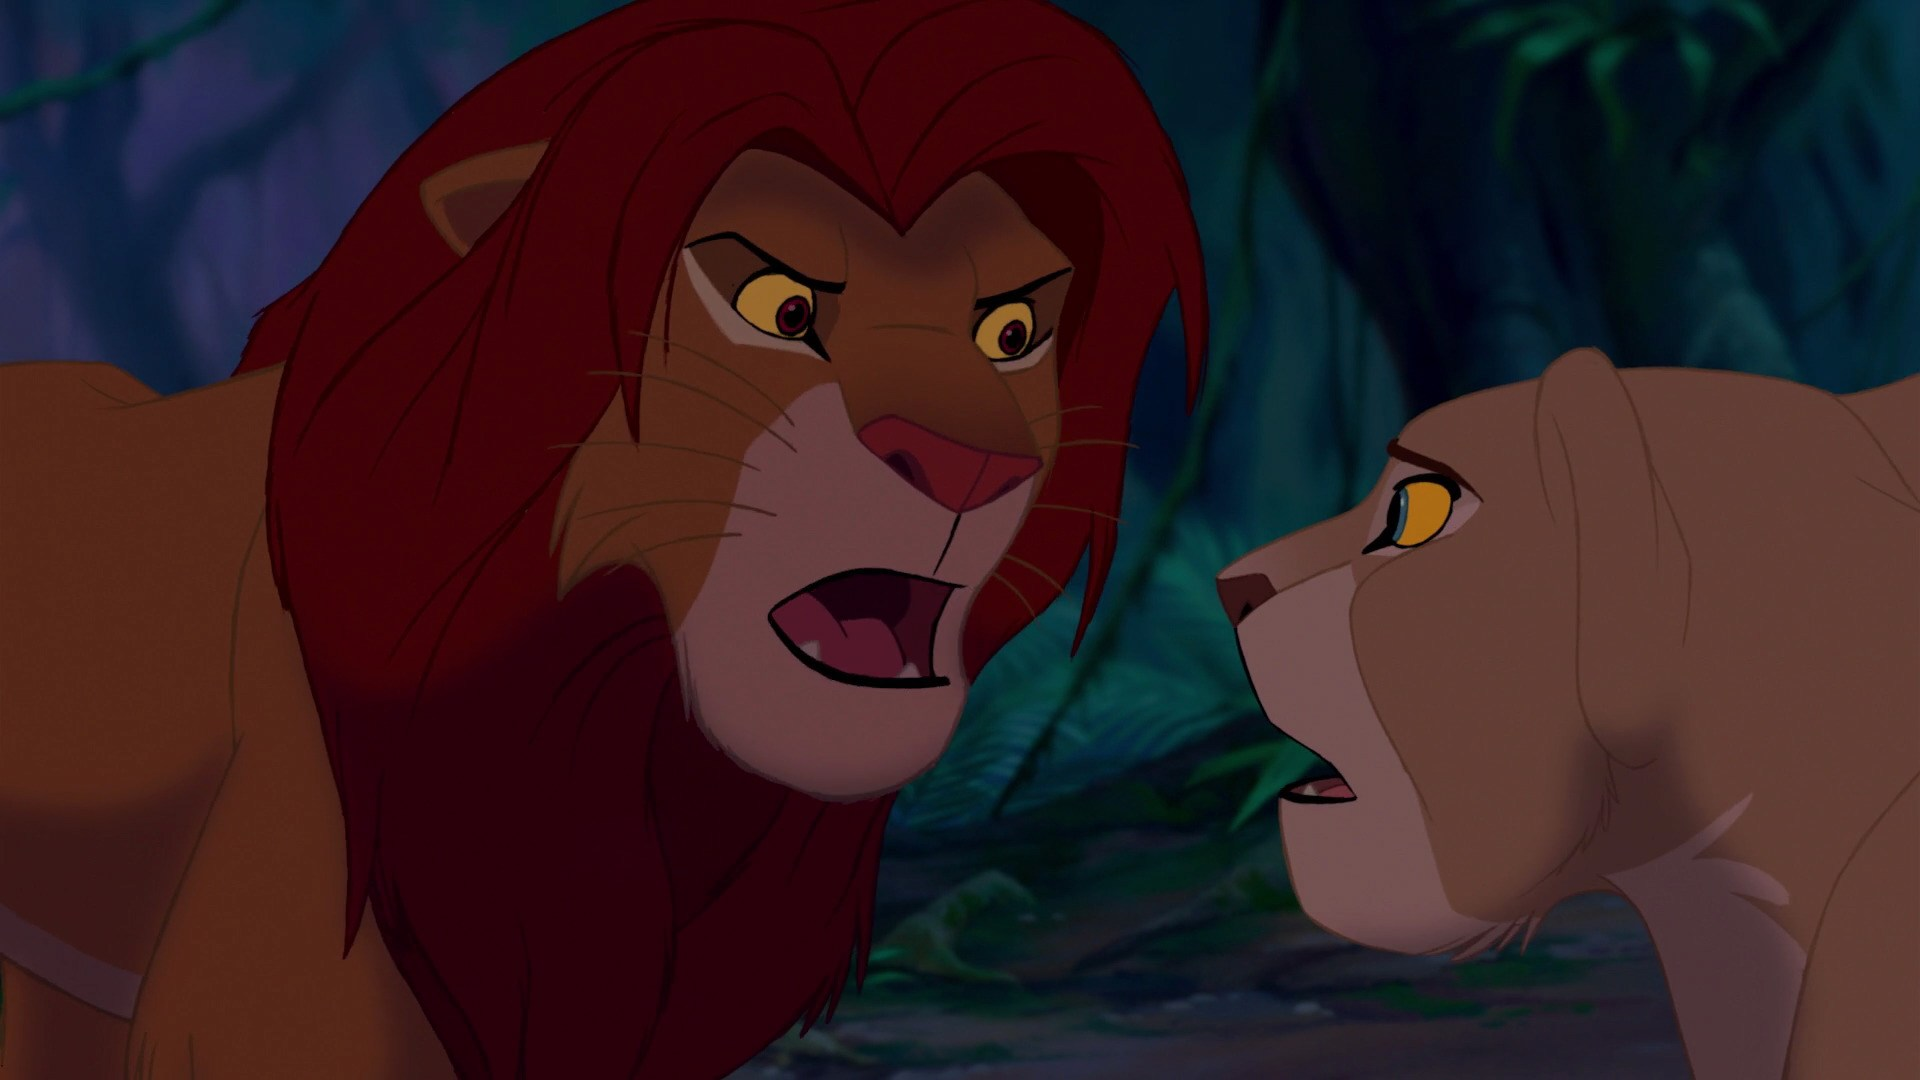 003lion-king-disneyscreencaps.com-7380.jpg